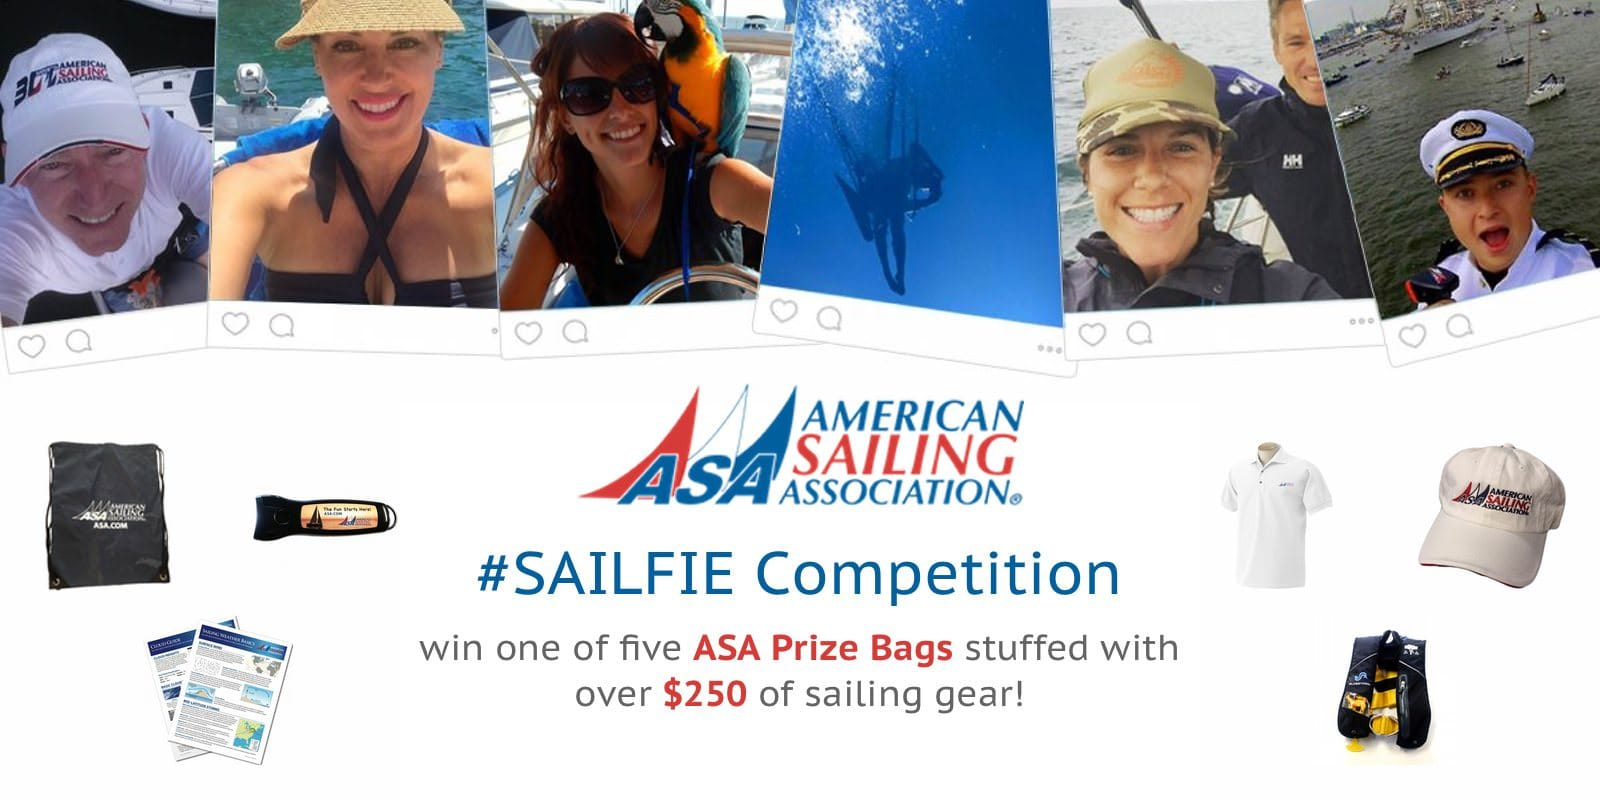 #SAILFIE Competition